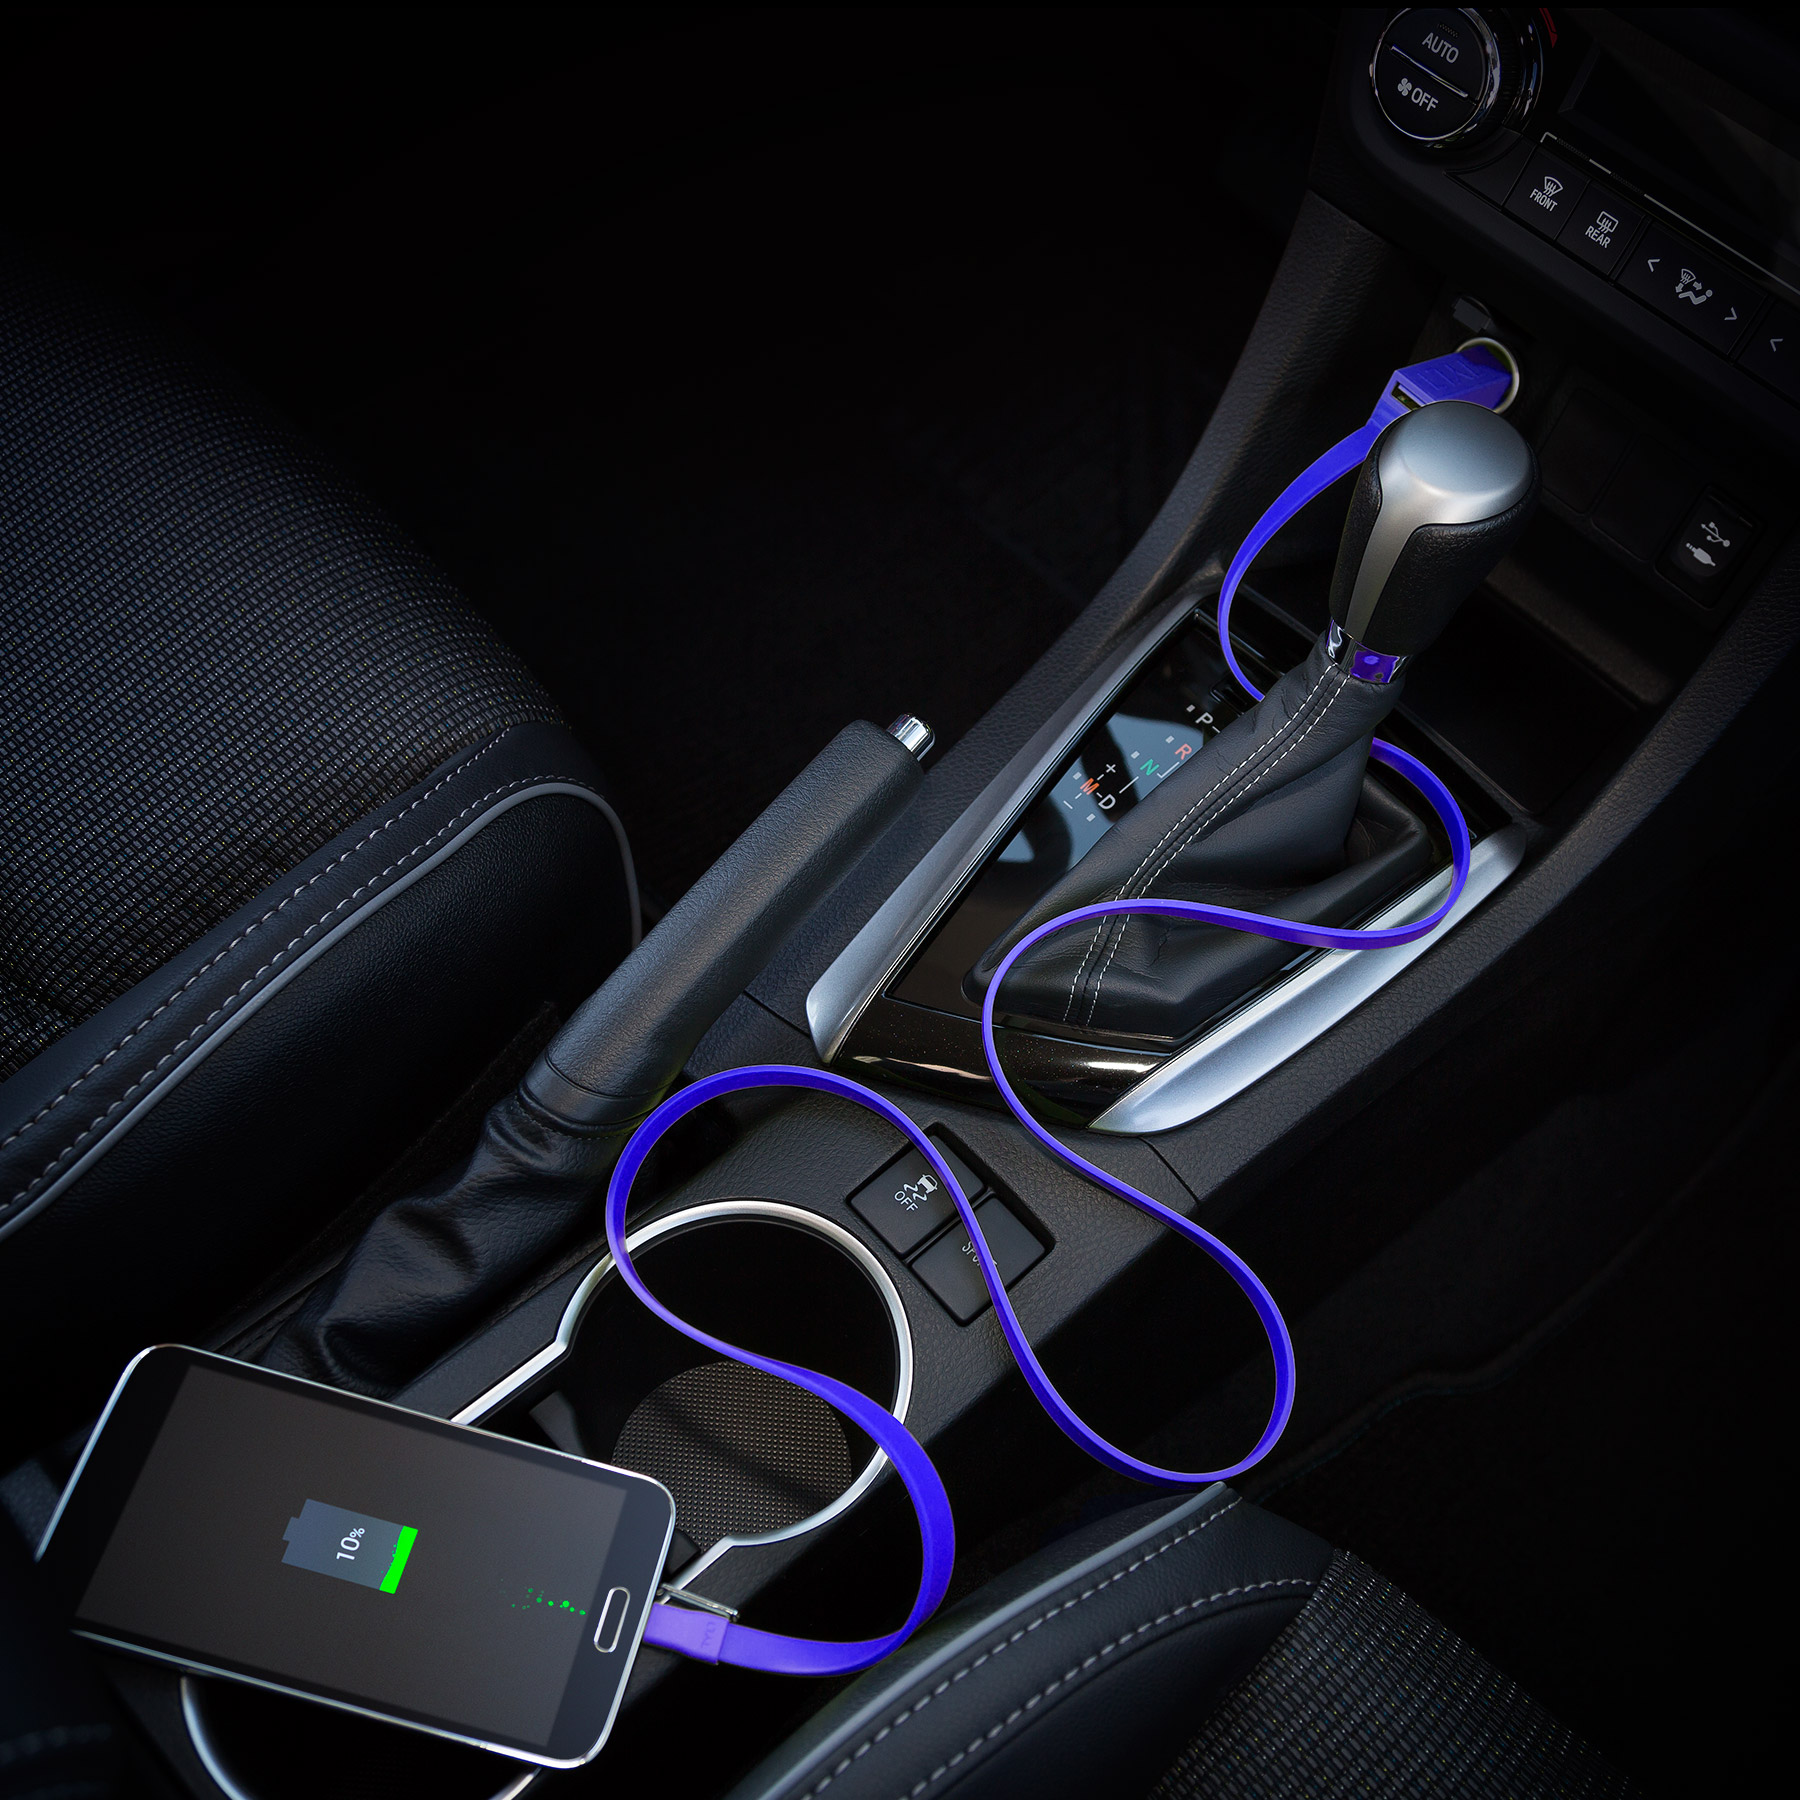 TYLT RIBBN car charger